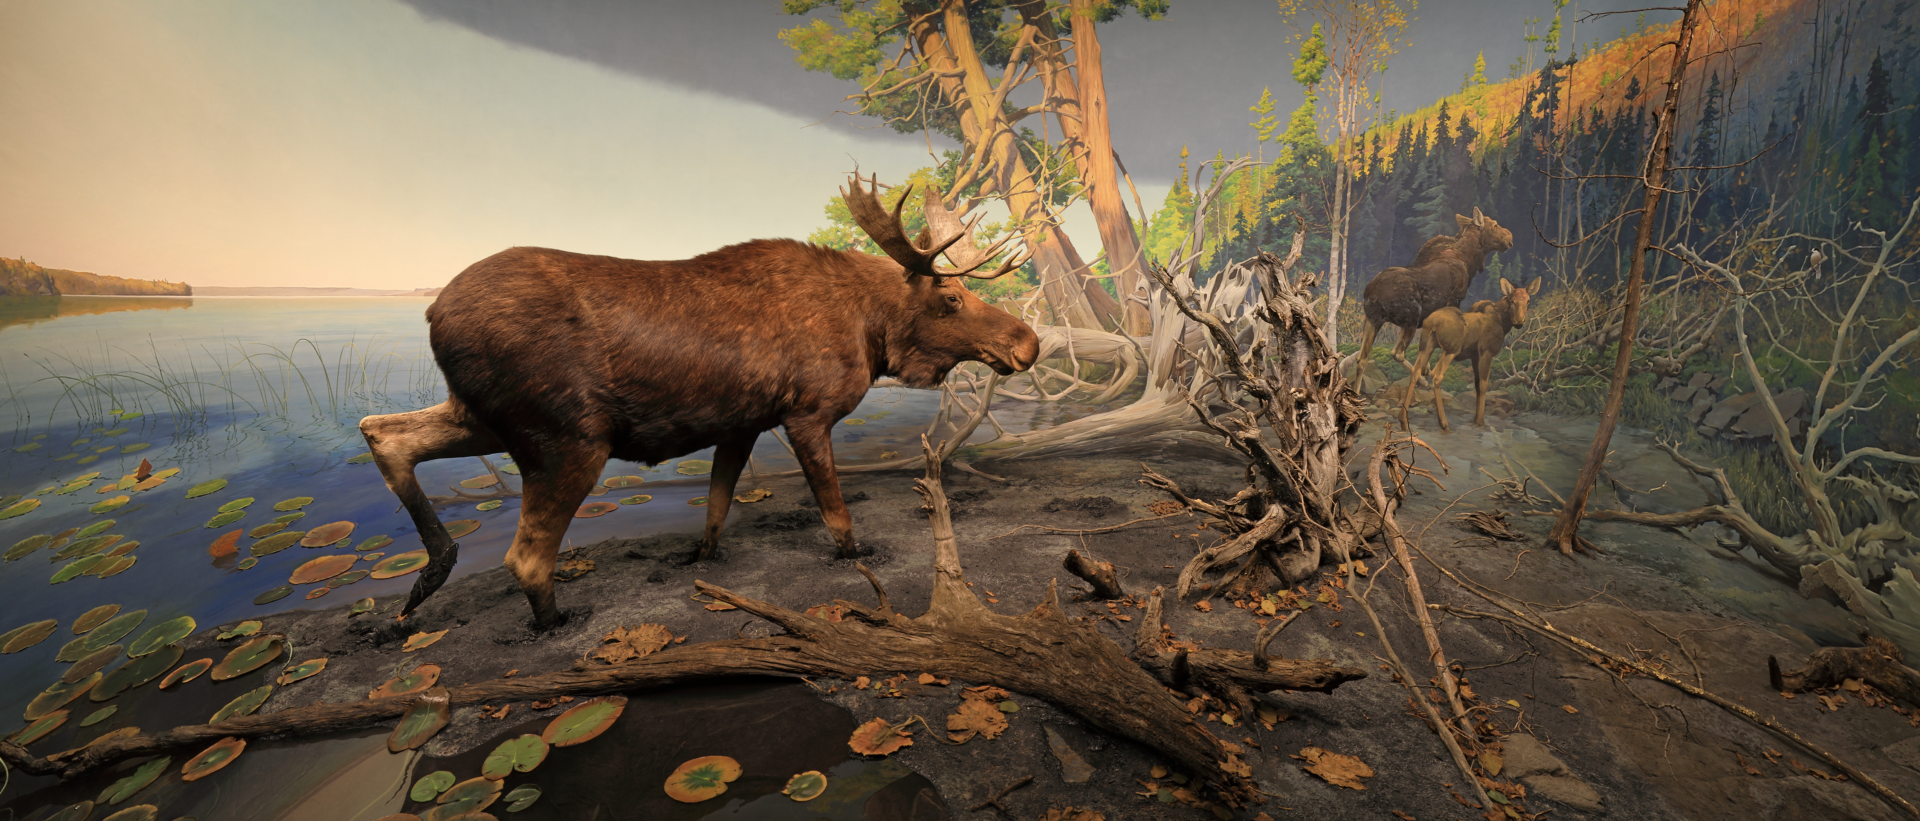 bell museum diorama of moose at Gunflint Lake